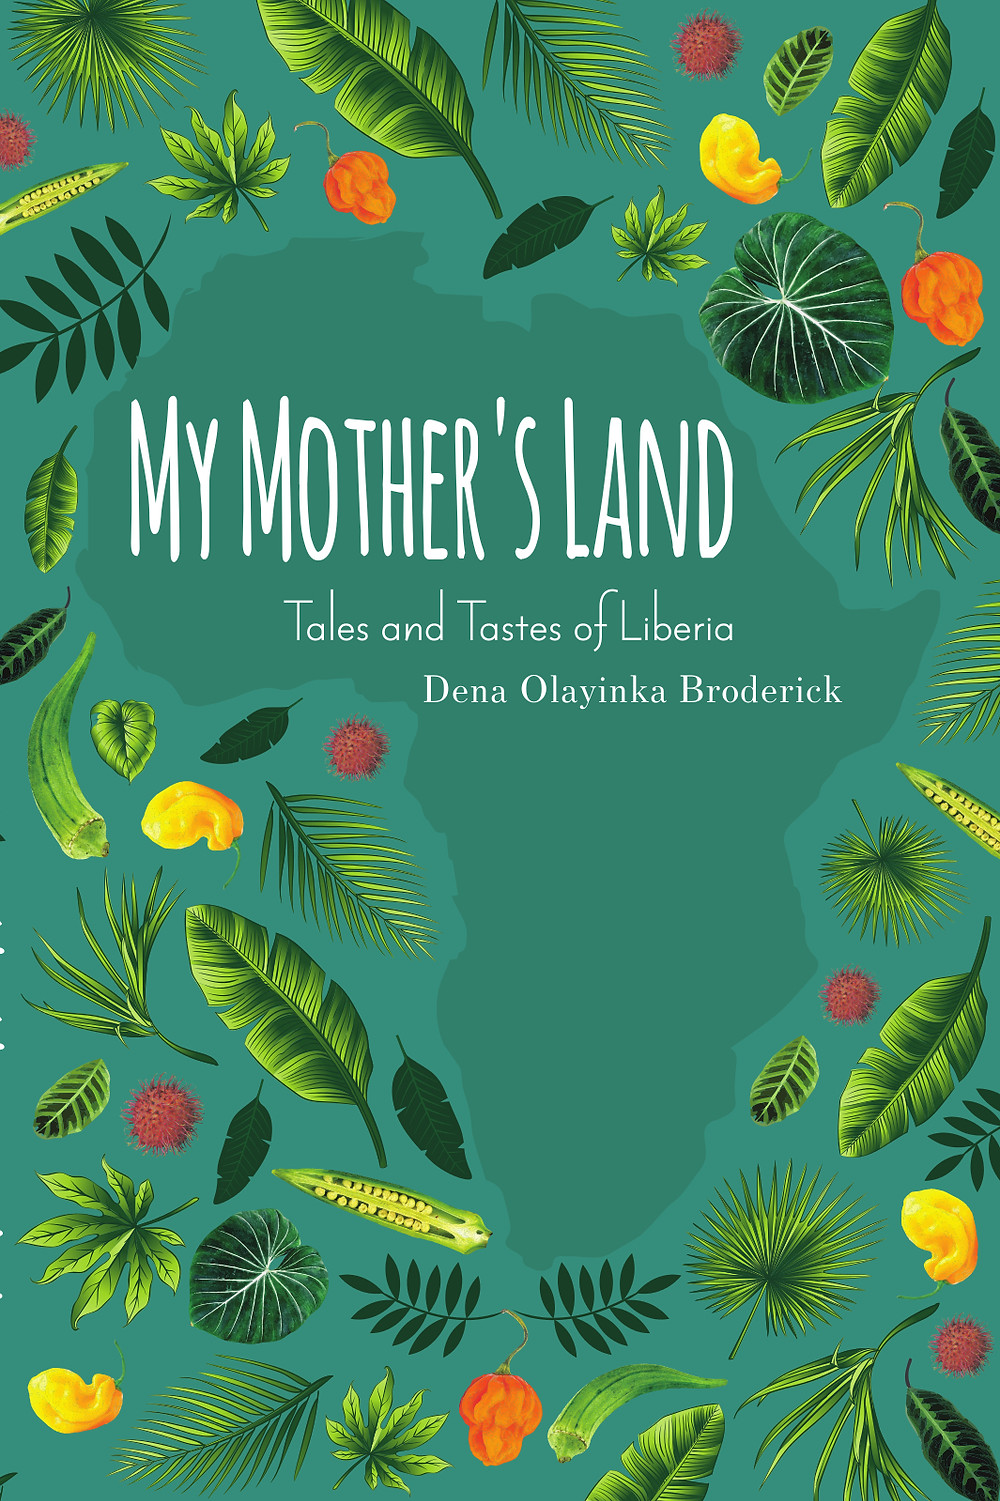 My Mother's Land by Dena Olayinka Broderick